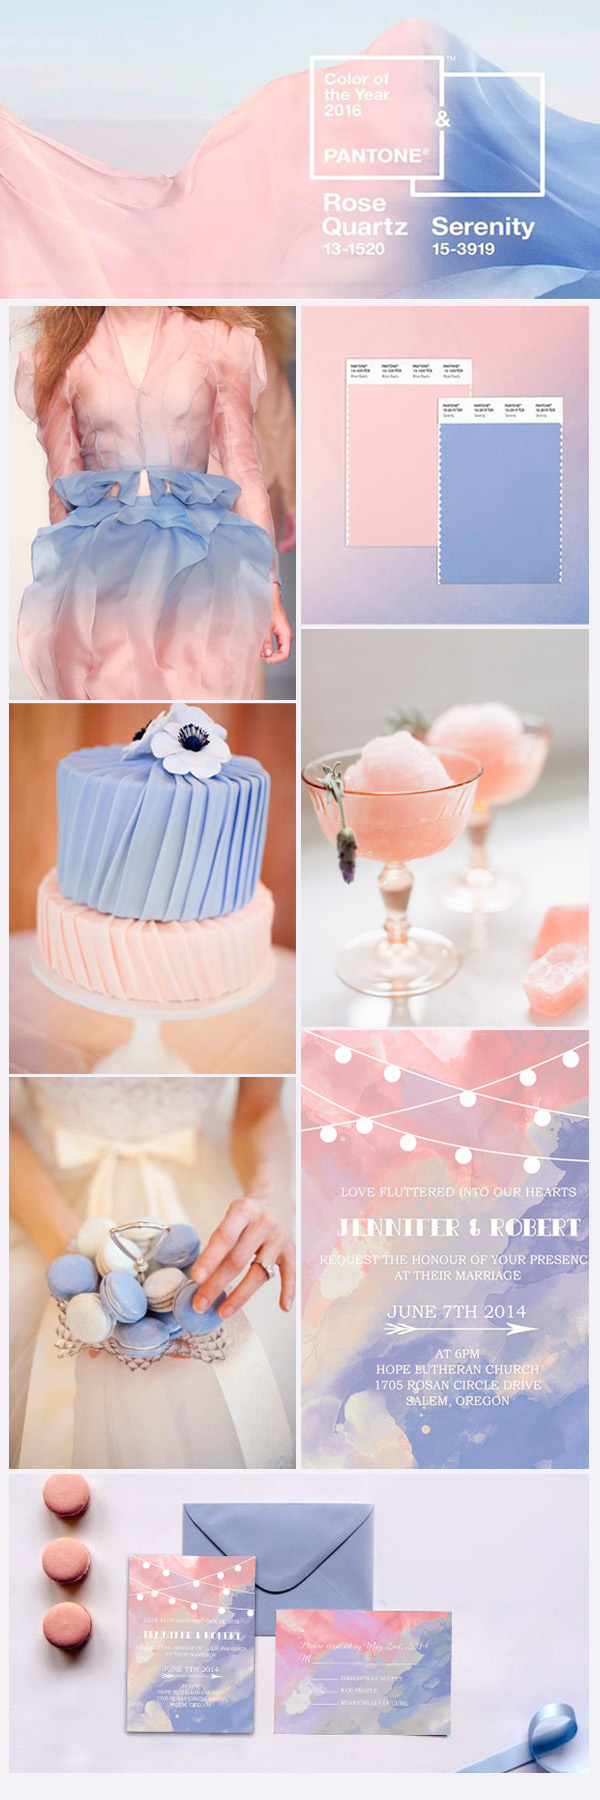 rose-quartz-and-serenity-wedding-color-trends-for-2016